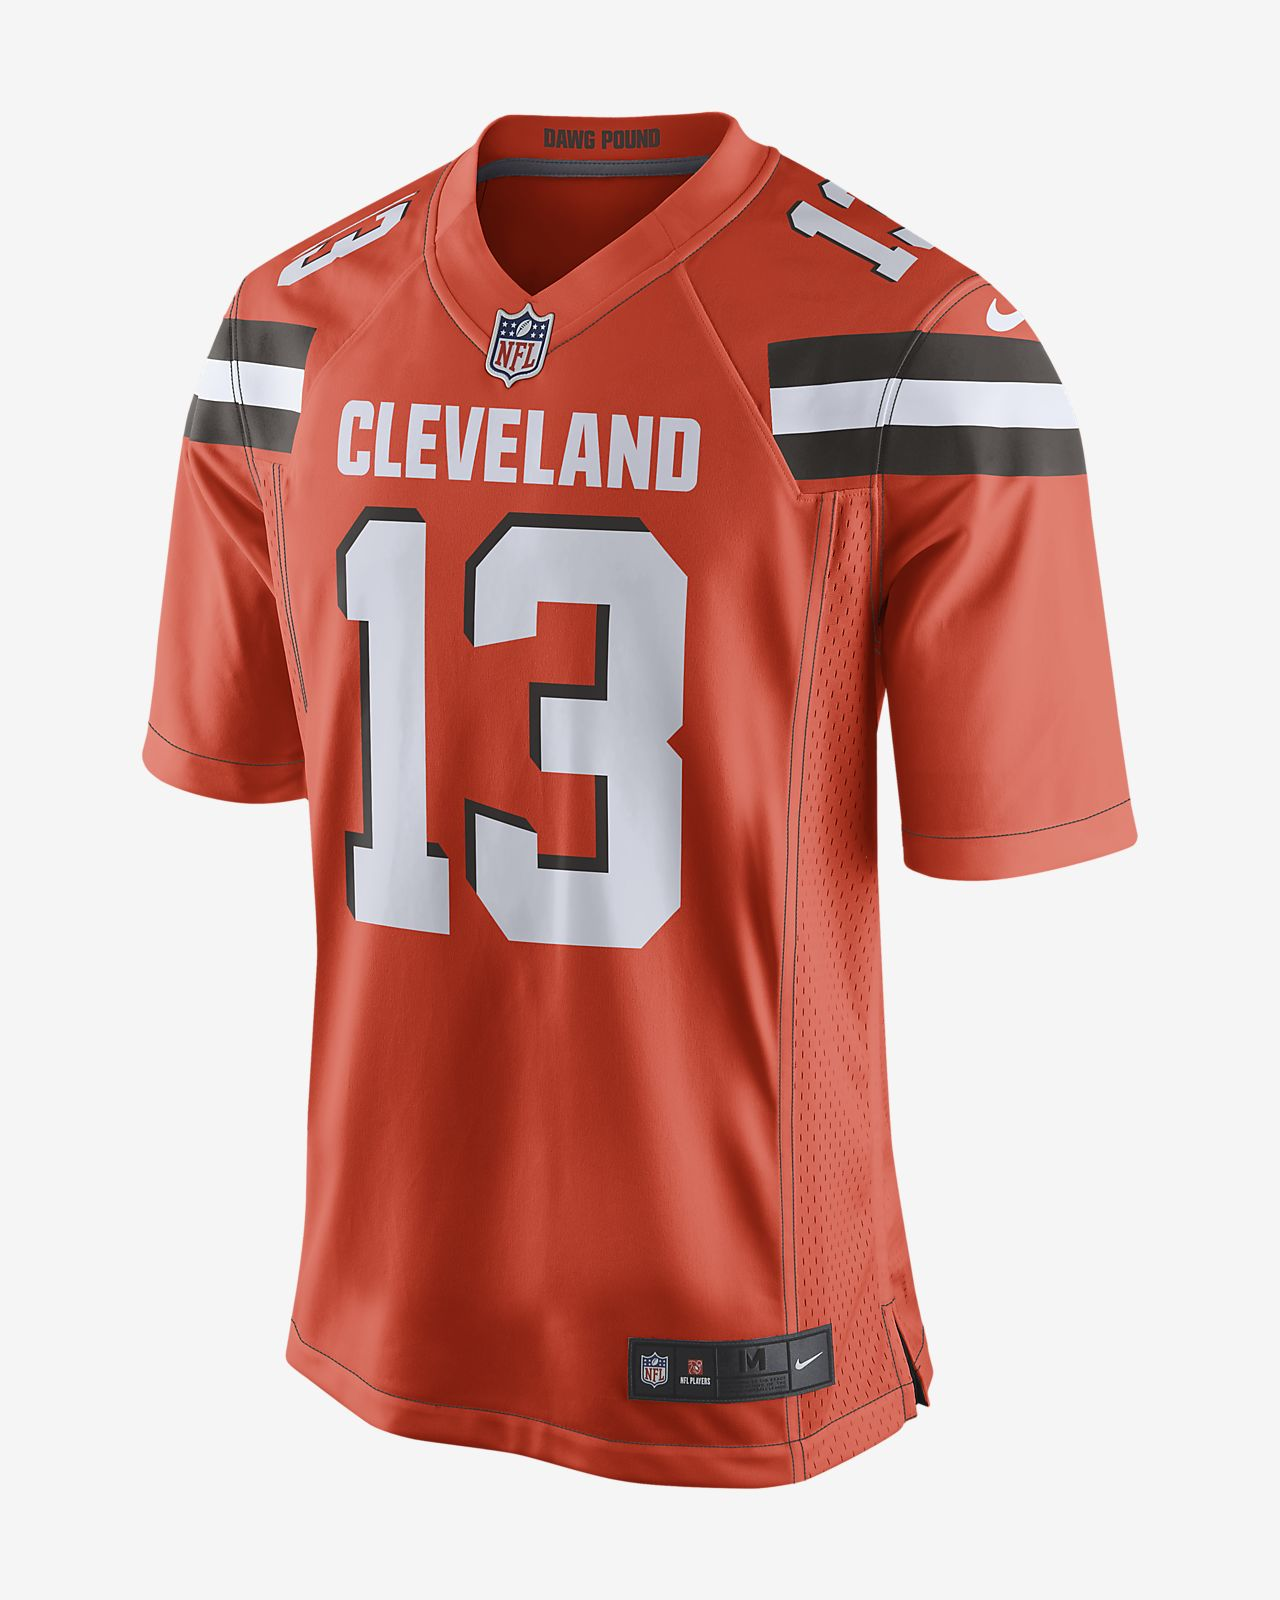 free shipping 5e41c 6adc7 NFL Cleveland Browns (Odell Beckham Jr.) Men's Game Football Jersey